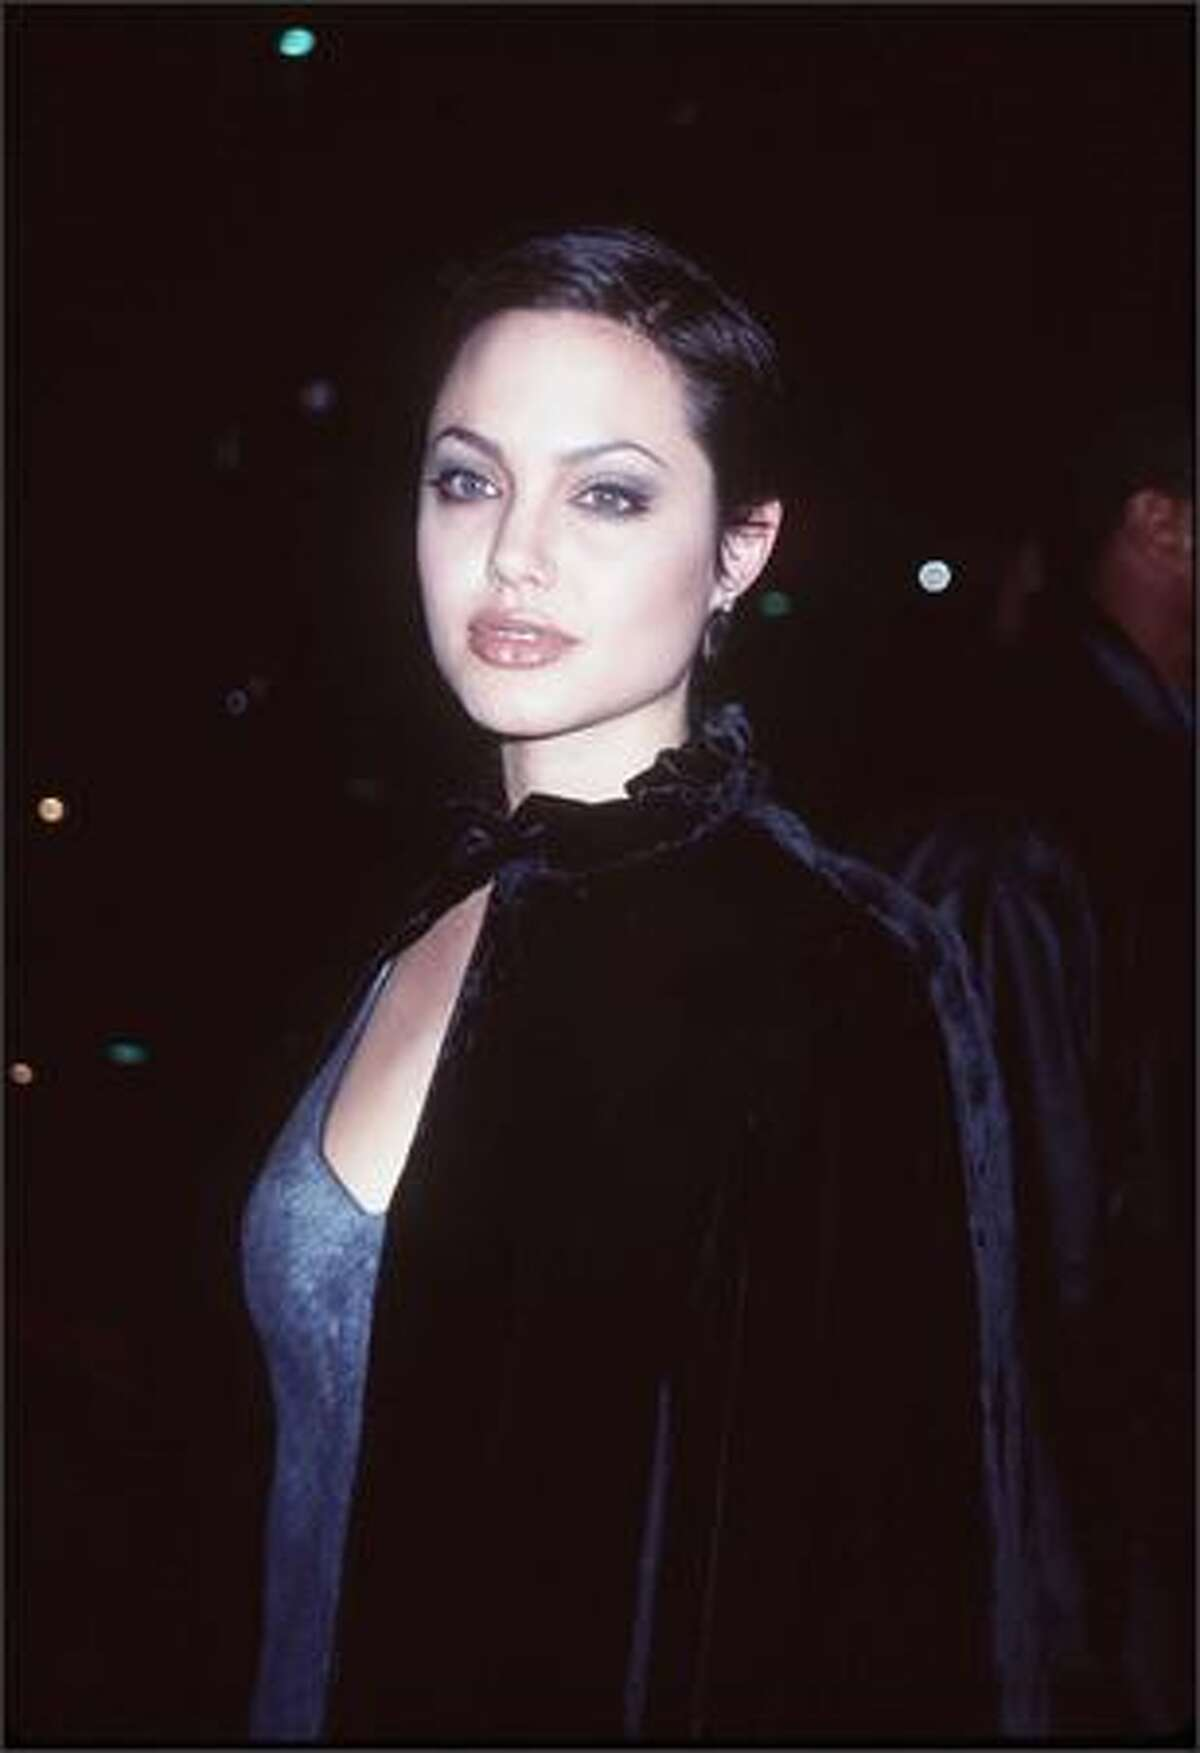 This is the 10th in an occasional series featuring stars and their ever-changing fashion styles. Angelina Jolie, now 33, is seen here at the Cable Ace Awards in Los Angeles, Nov. 15, 1997, in the early stages of a film career that has since led to an Academy Award and three Golden Globe Awards.